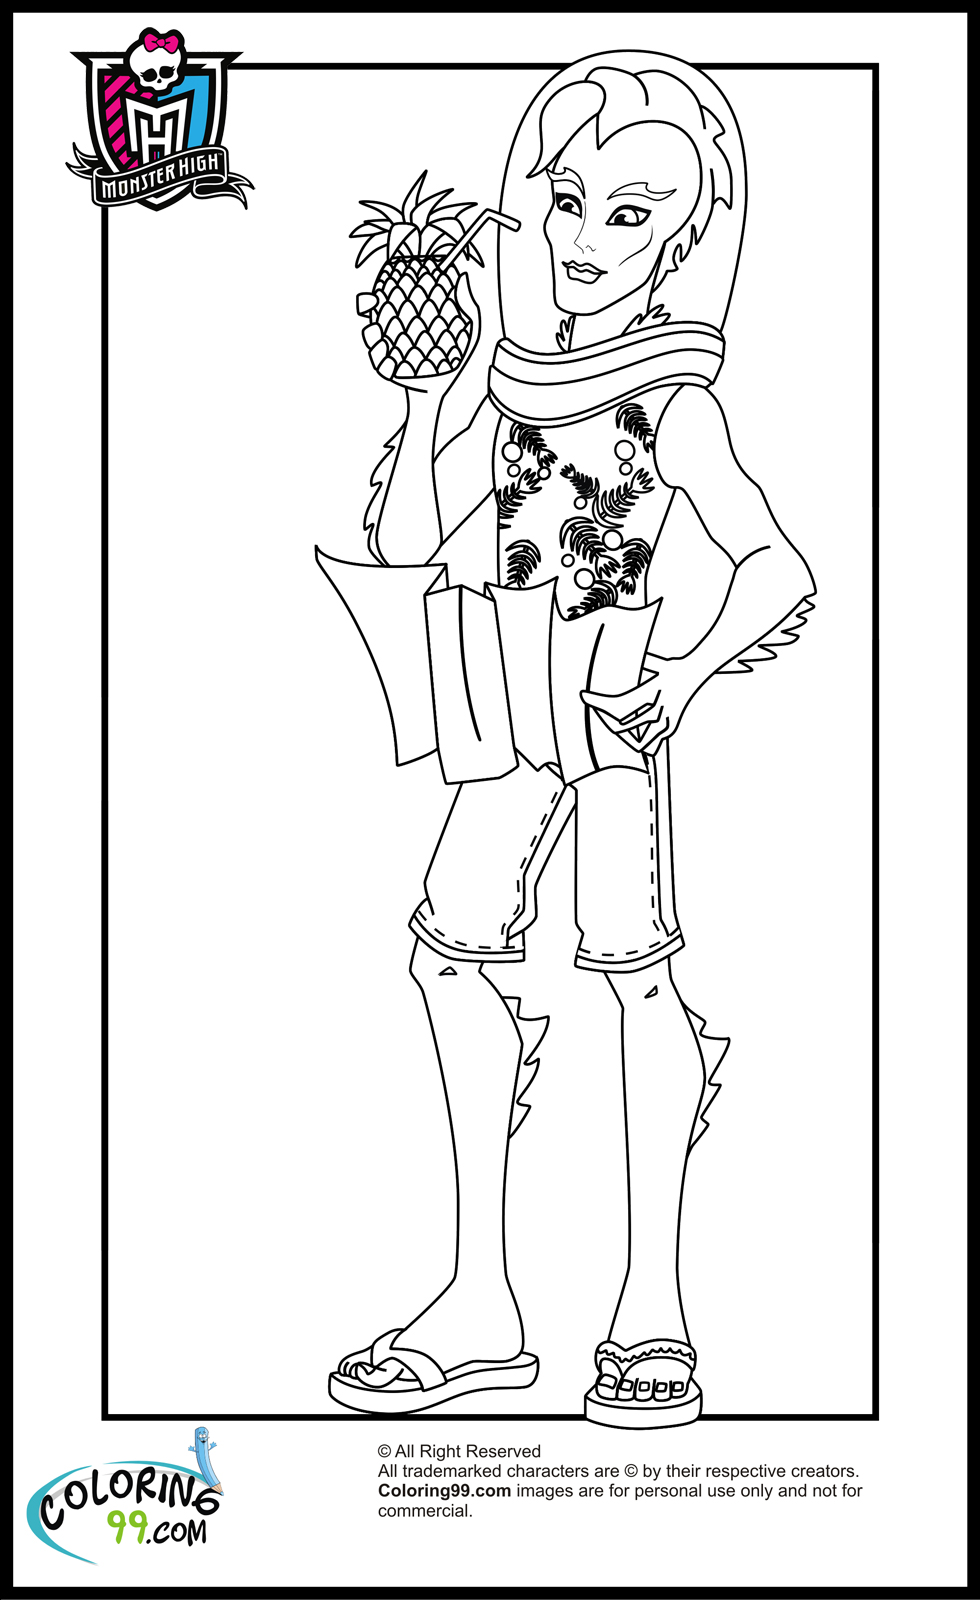 Monster high boys coloring pages team colors for Monster high printables coloring pages